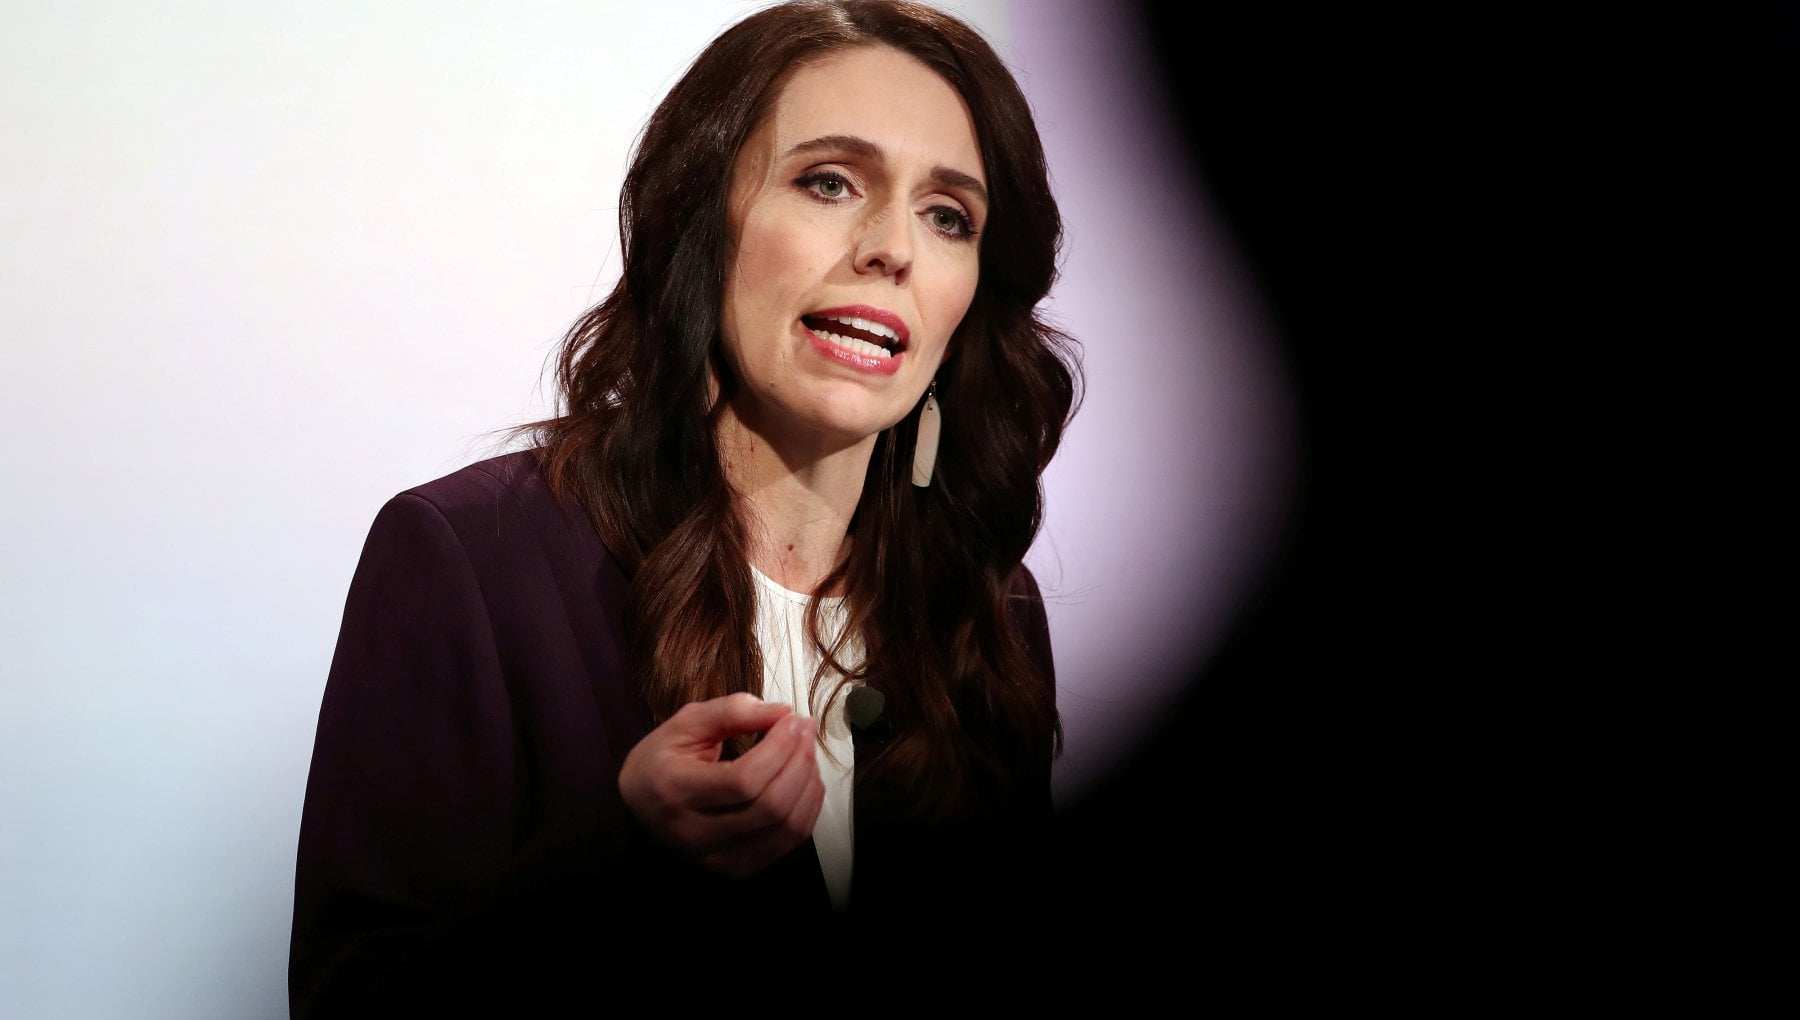 The New Zealand Prime Minister's Final Step: Increase the Minimum Wage and Taxes for the Rich